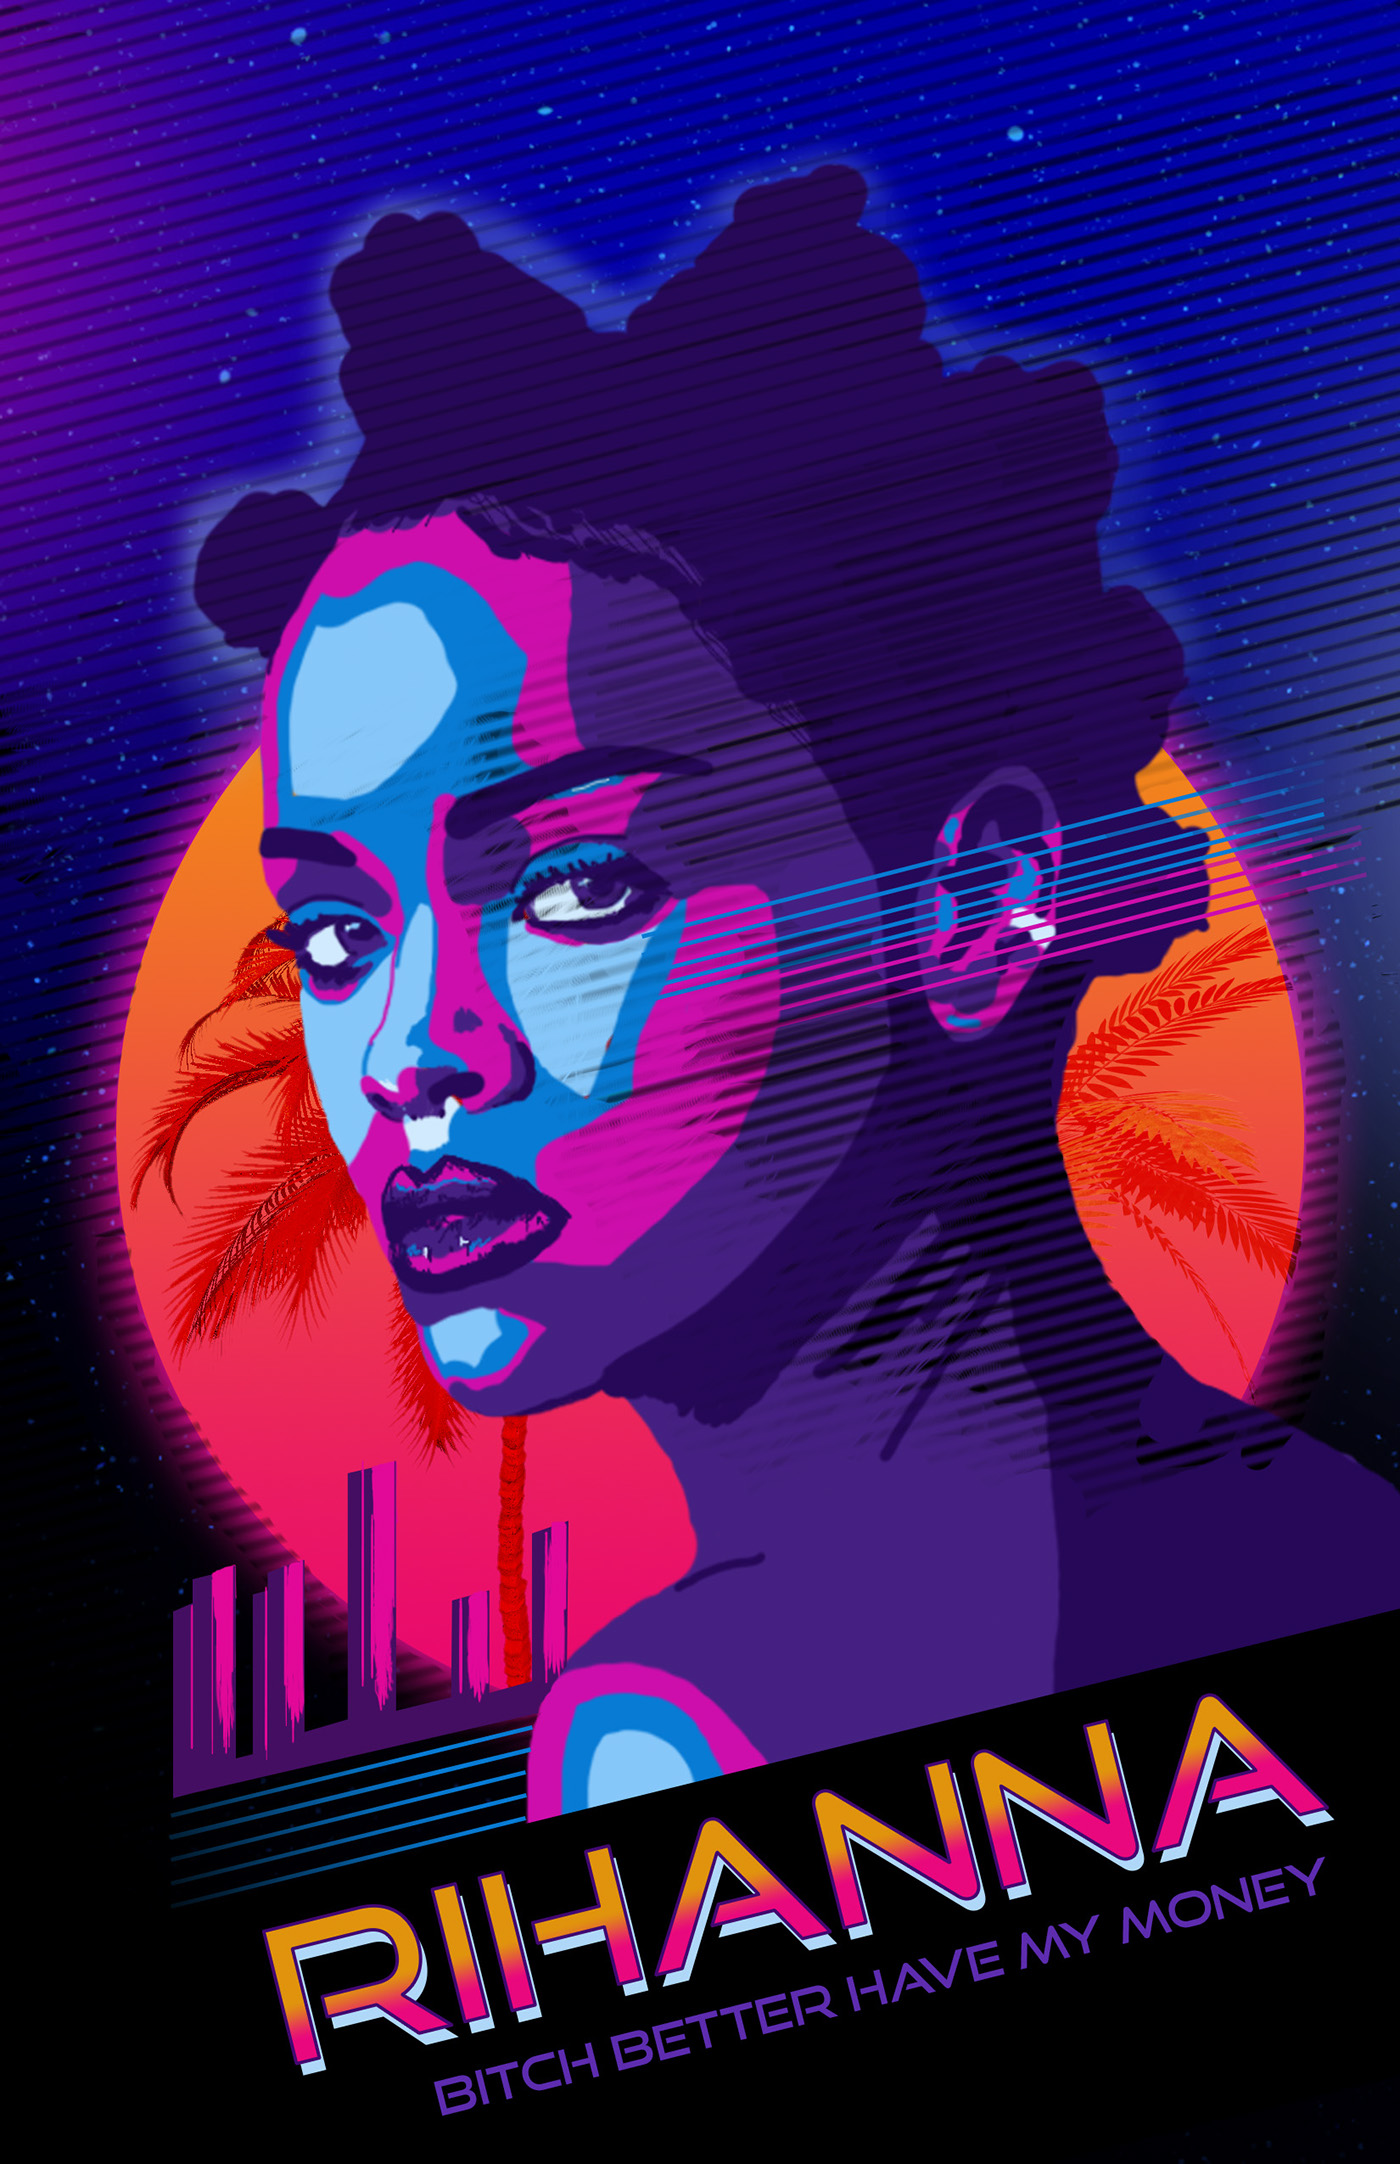 posters_80s Miami Poster Design with Rihanna on Behance